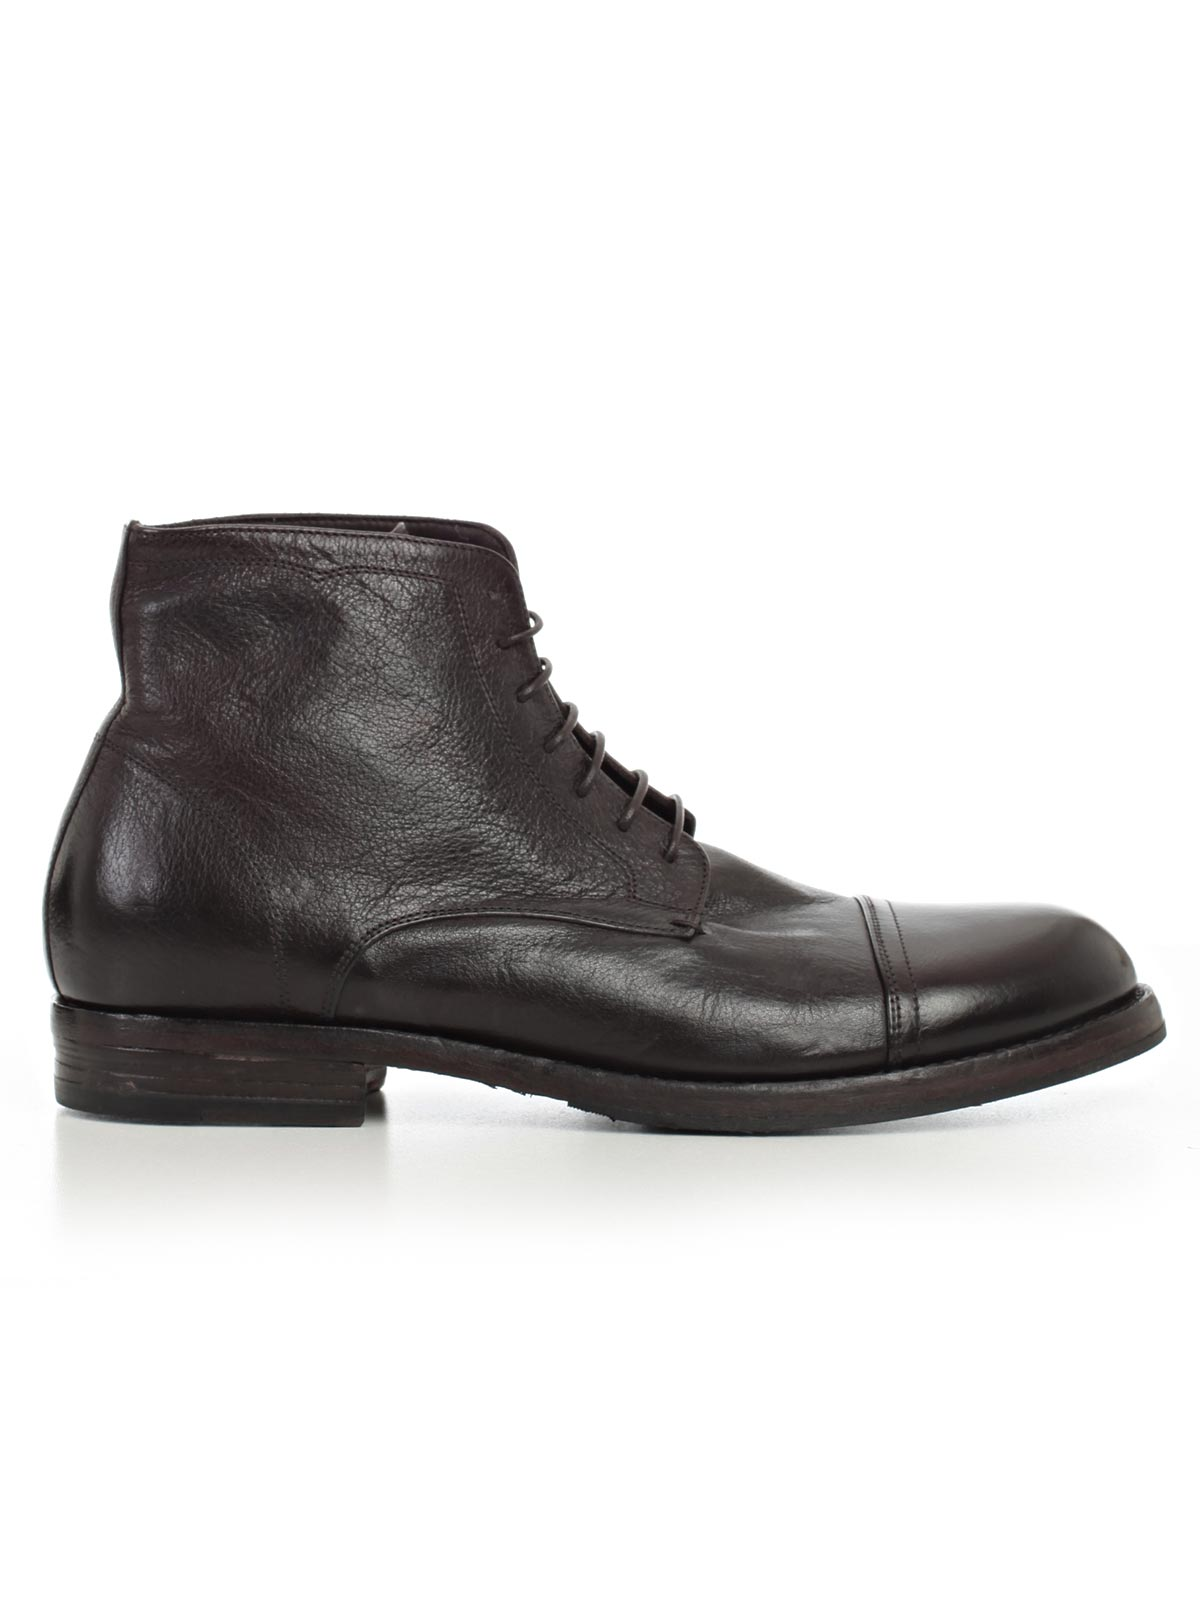 Picture of PANTANETTI FOOTWEAR STIVALETTO